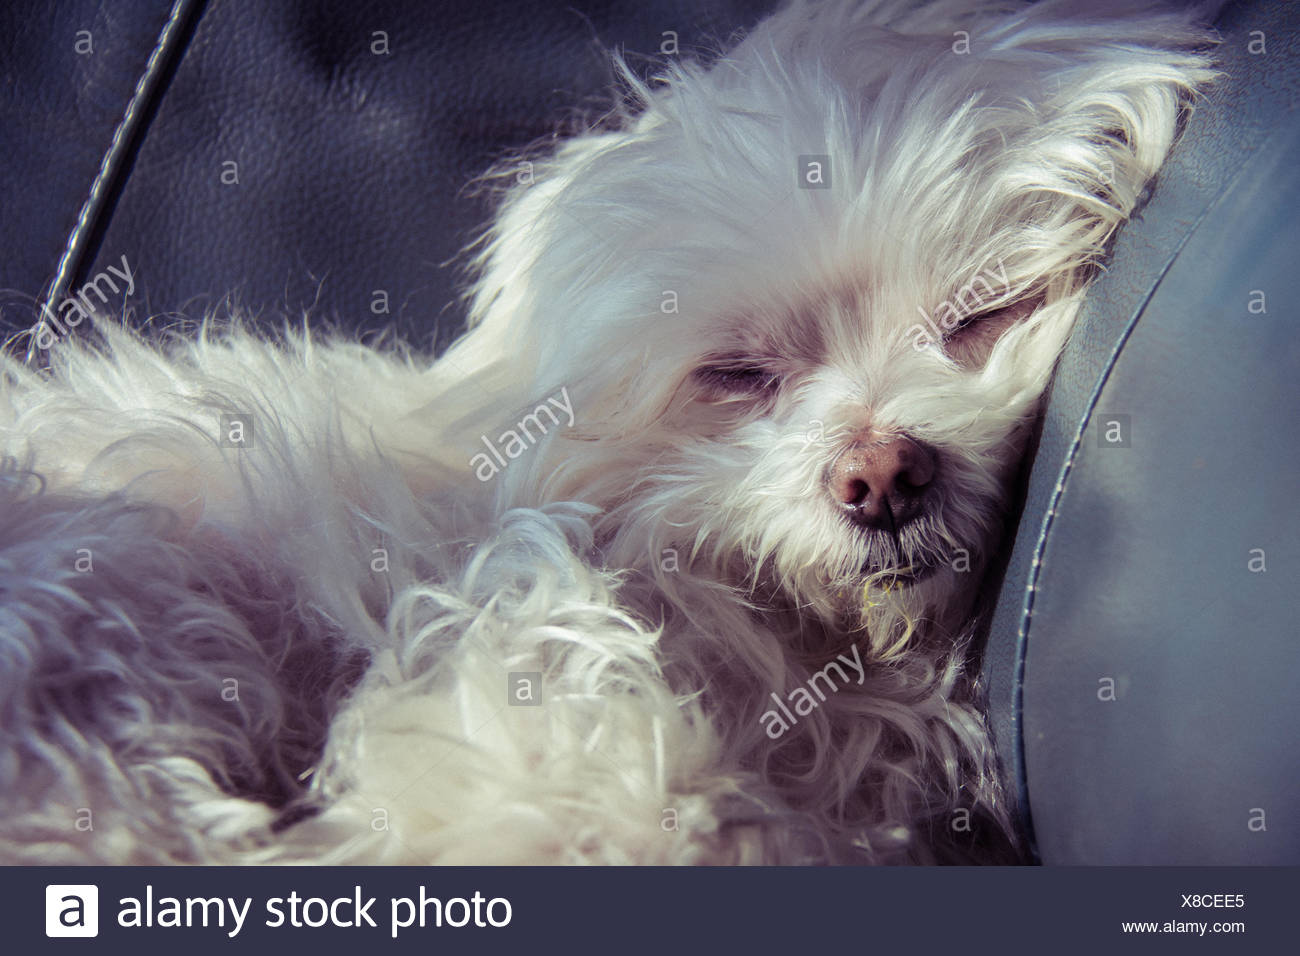 White Maltese Puppy Dog Sleeping On Leather Couch Stock Photo Alamy